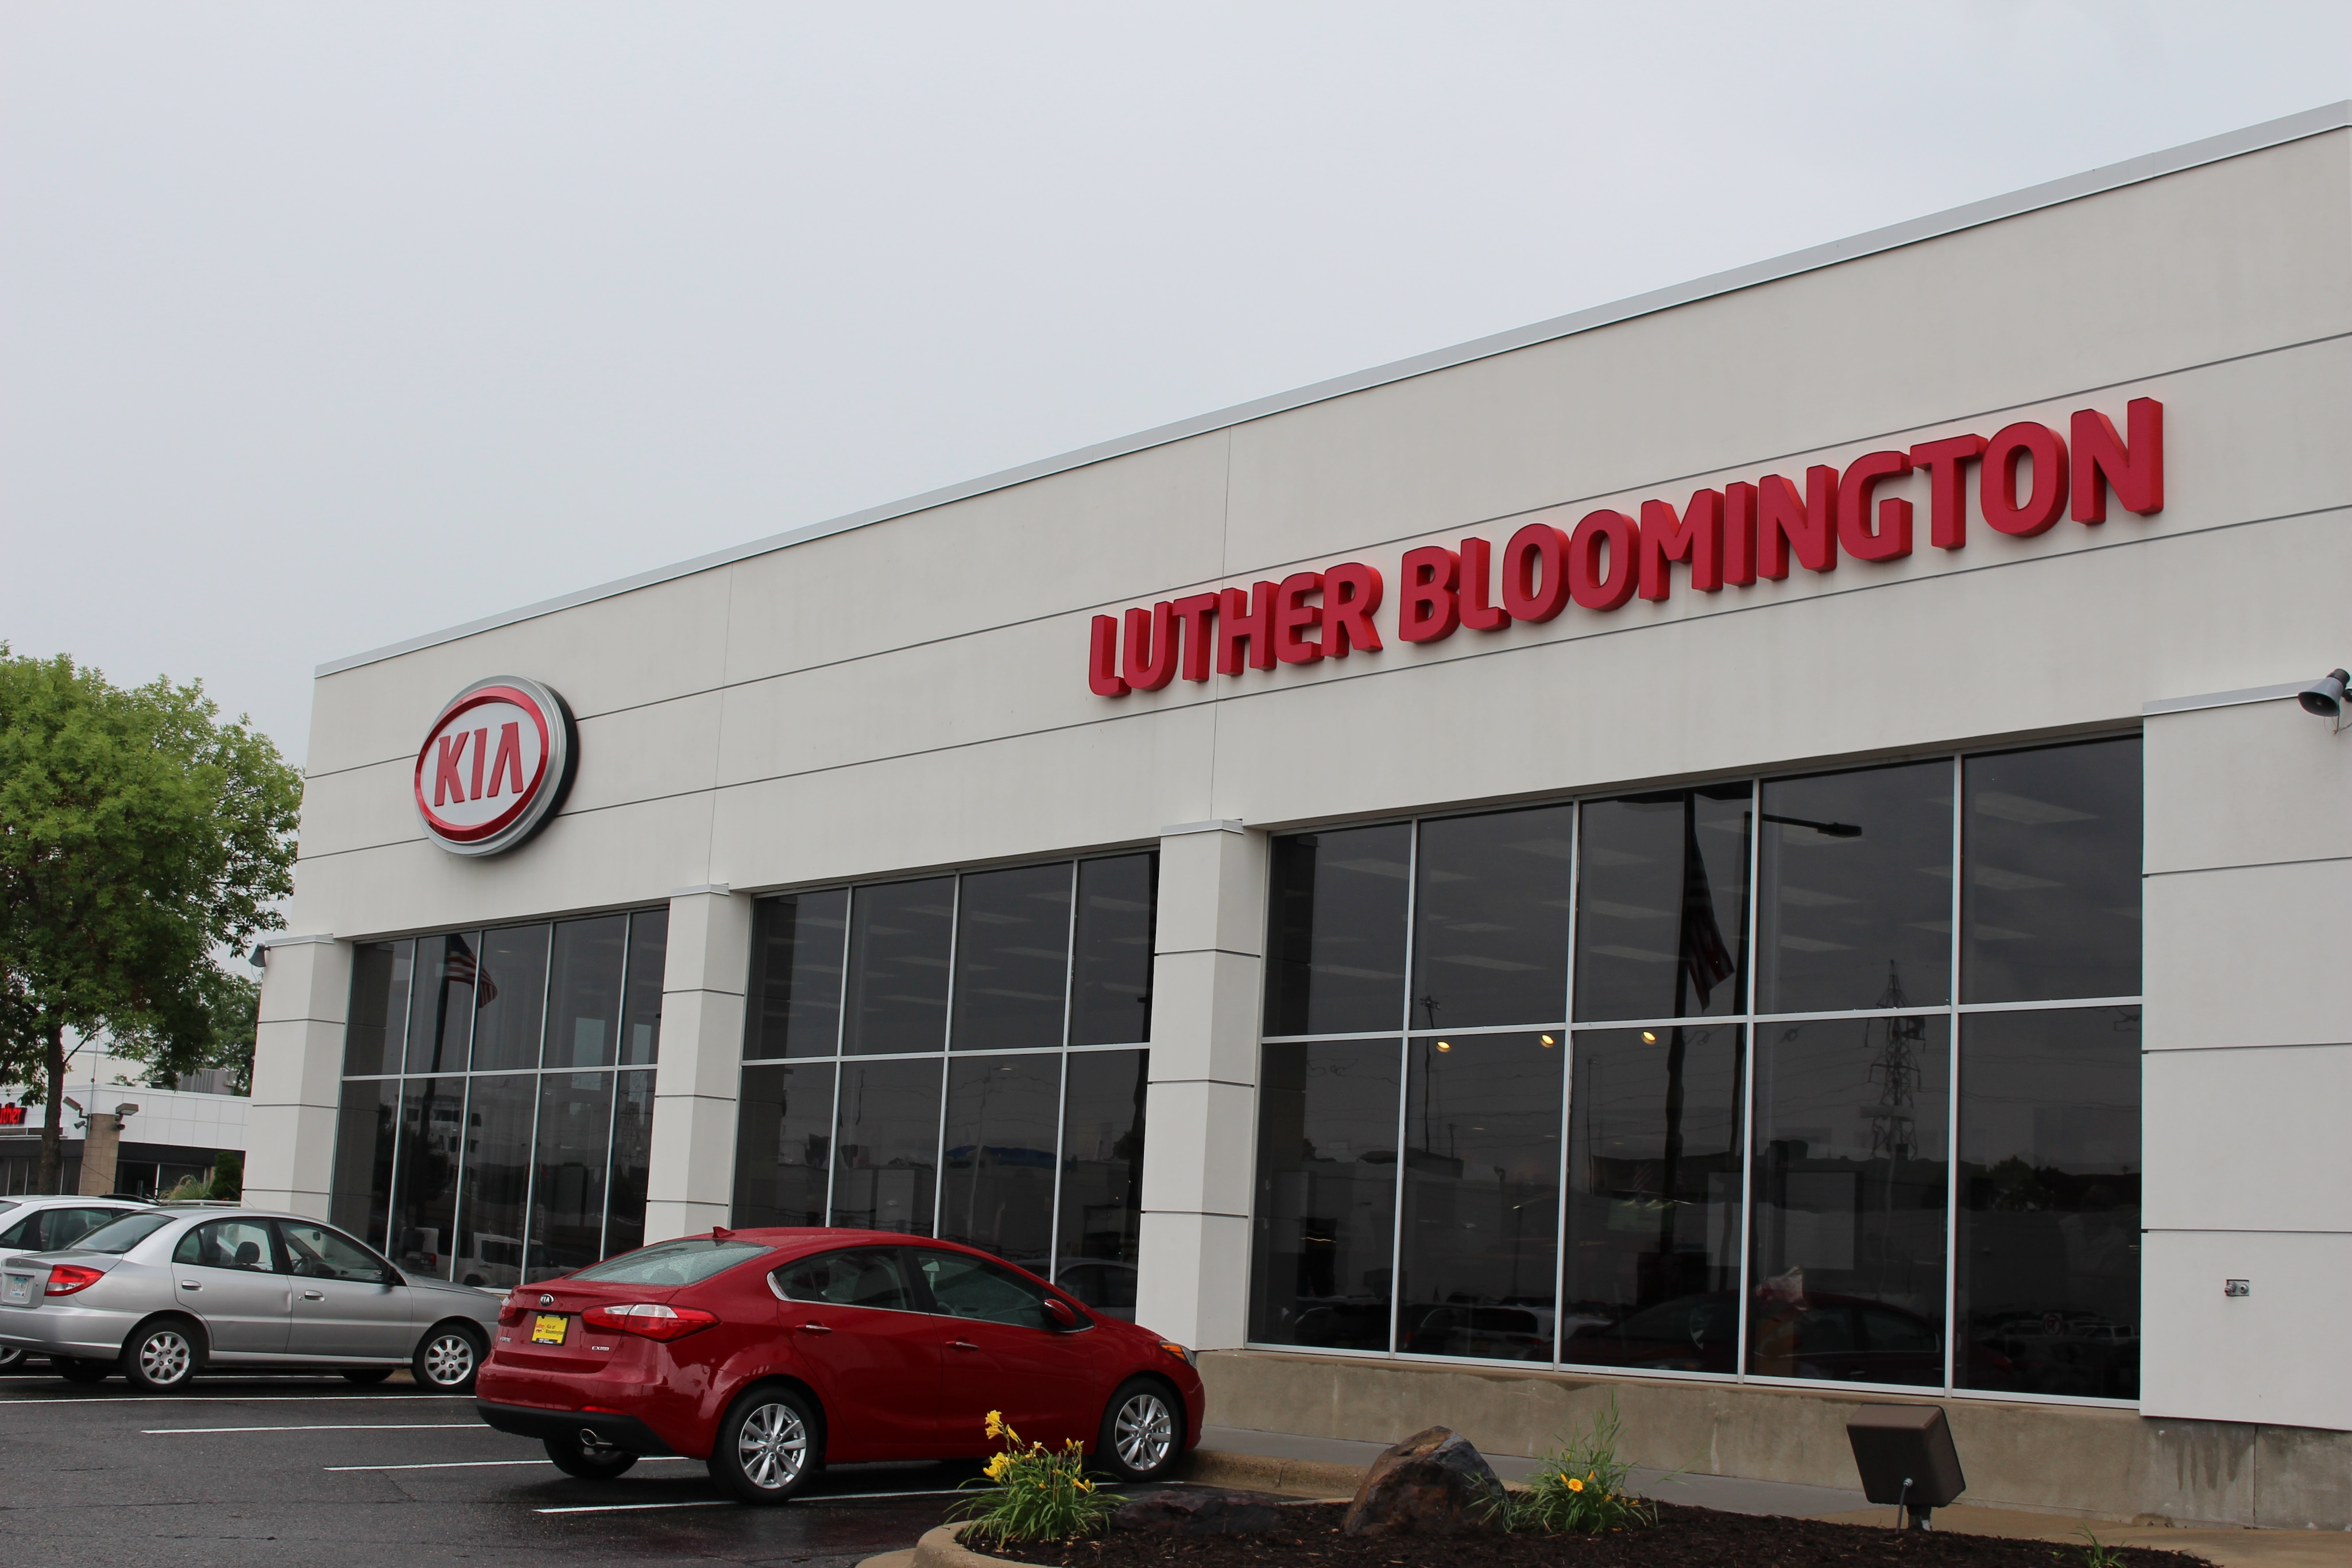 luther bloomington kia new kia dealership in bloomington mn 55431. Black Bedroom Furniture Sets. Home Design Ideas